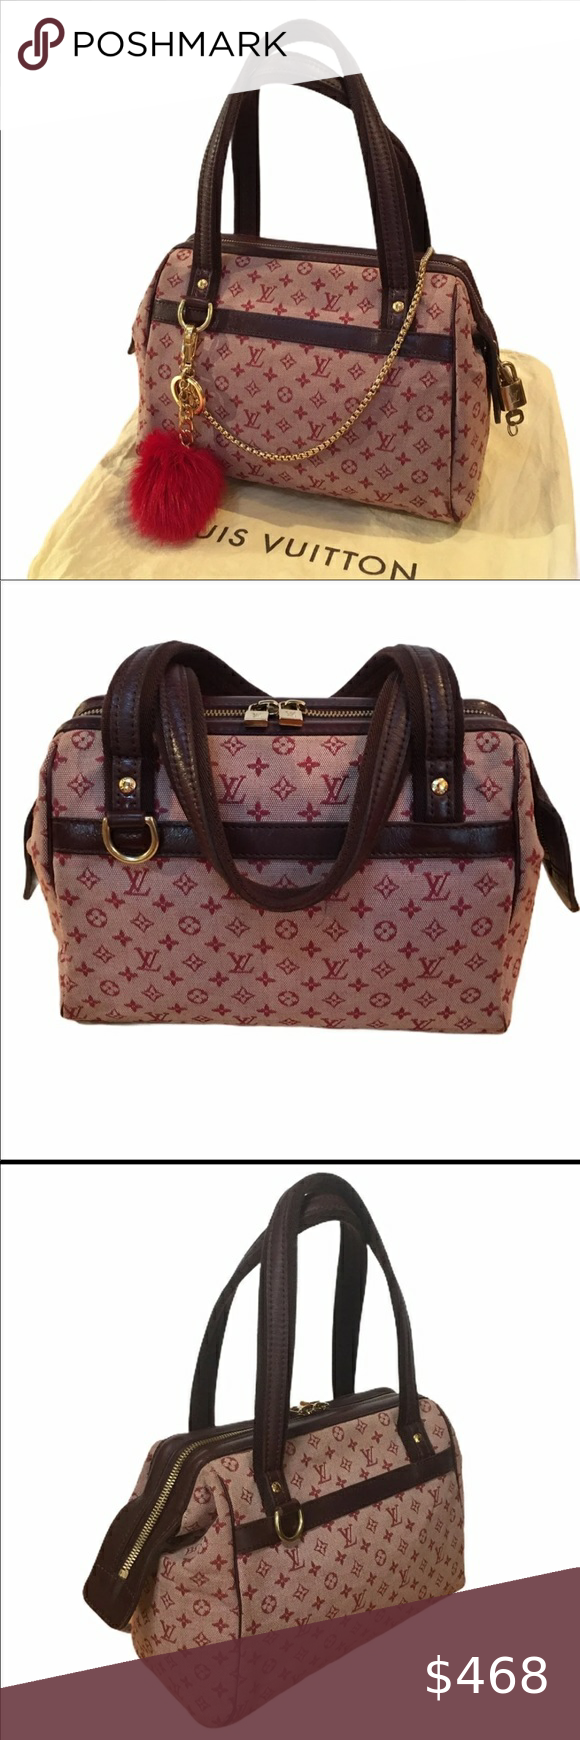 Auth Louis Vuitton Josephine Min Lin Cherry Pm In 2020 Louis Vuitton Vuitton Louis Vuitton Red